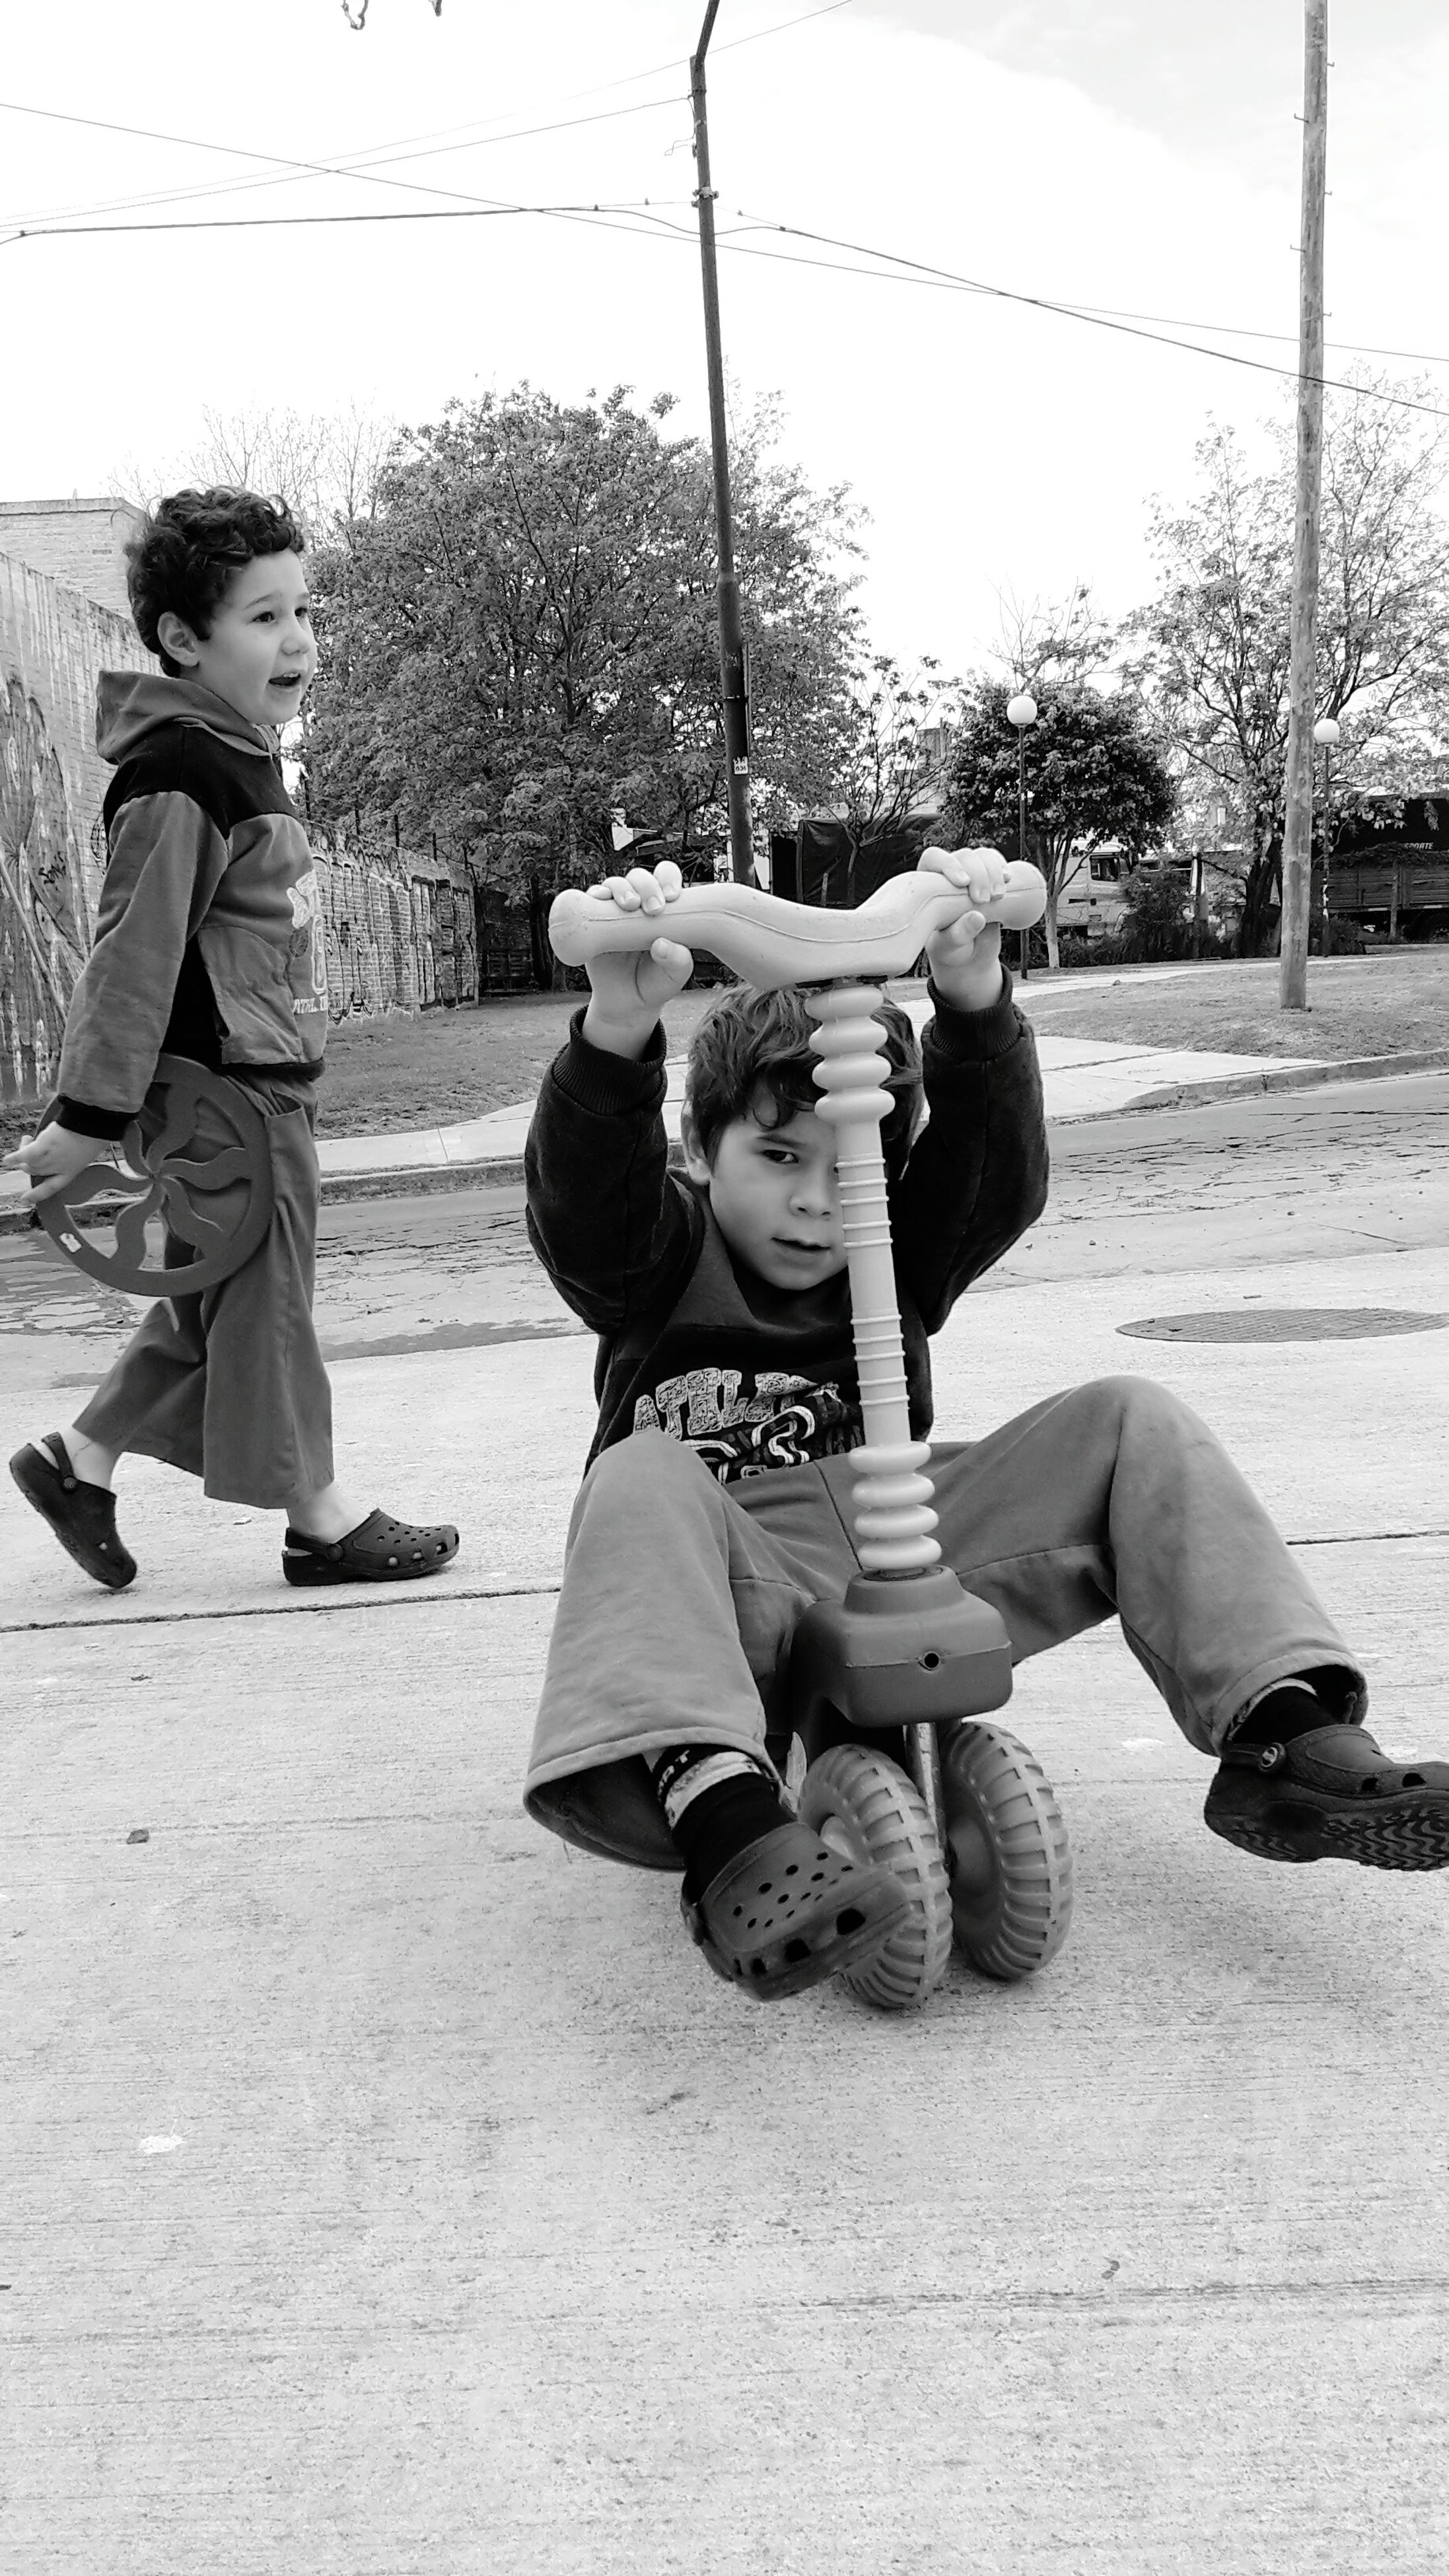 childhood, lifestyles, full length, togetherness, casual clothing, boys, elementary age, leisure activity, girls, bonding, love, sitting, cute, innocence, tree, person, playing